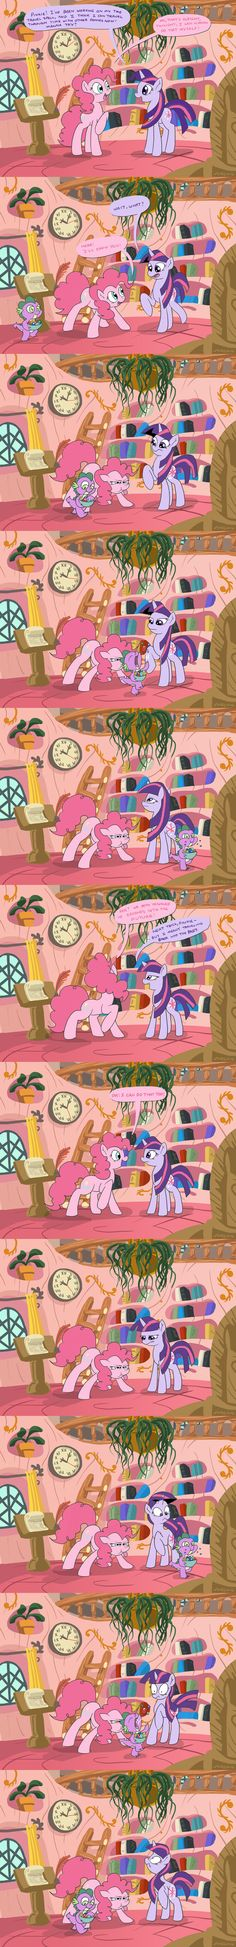 "Pinkie Pie: ""Laws of Time and Space? Meh""."